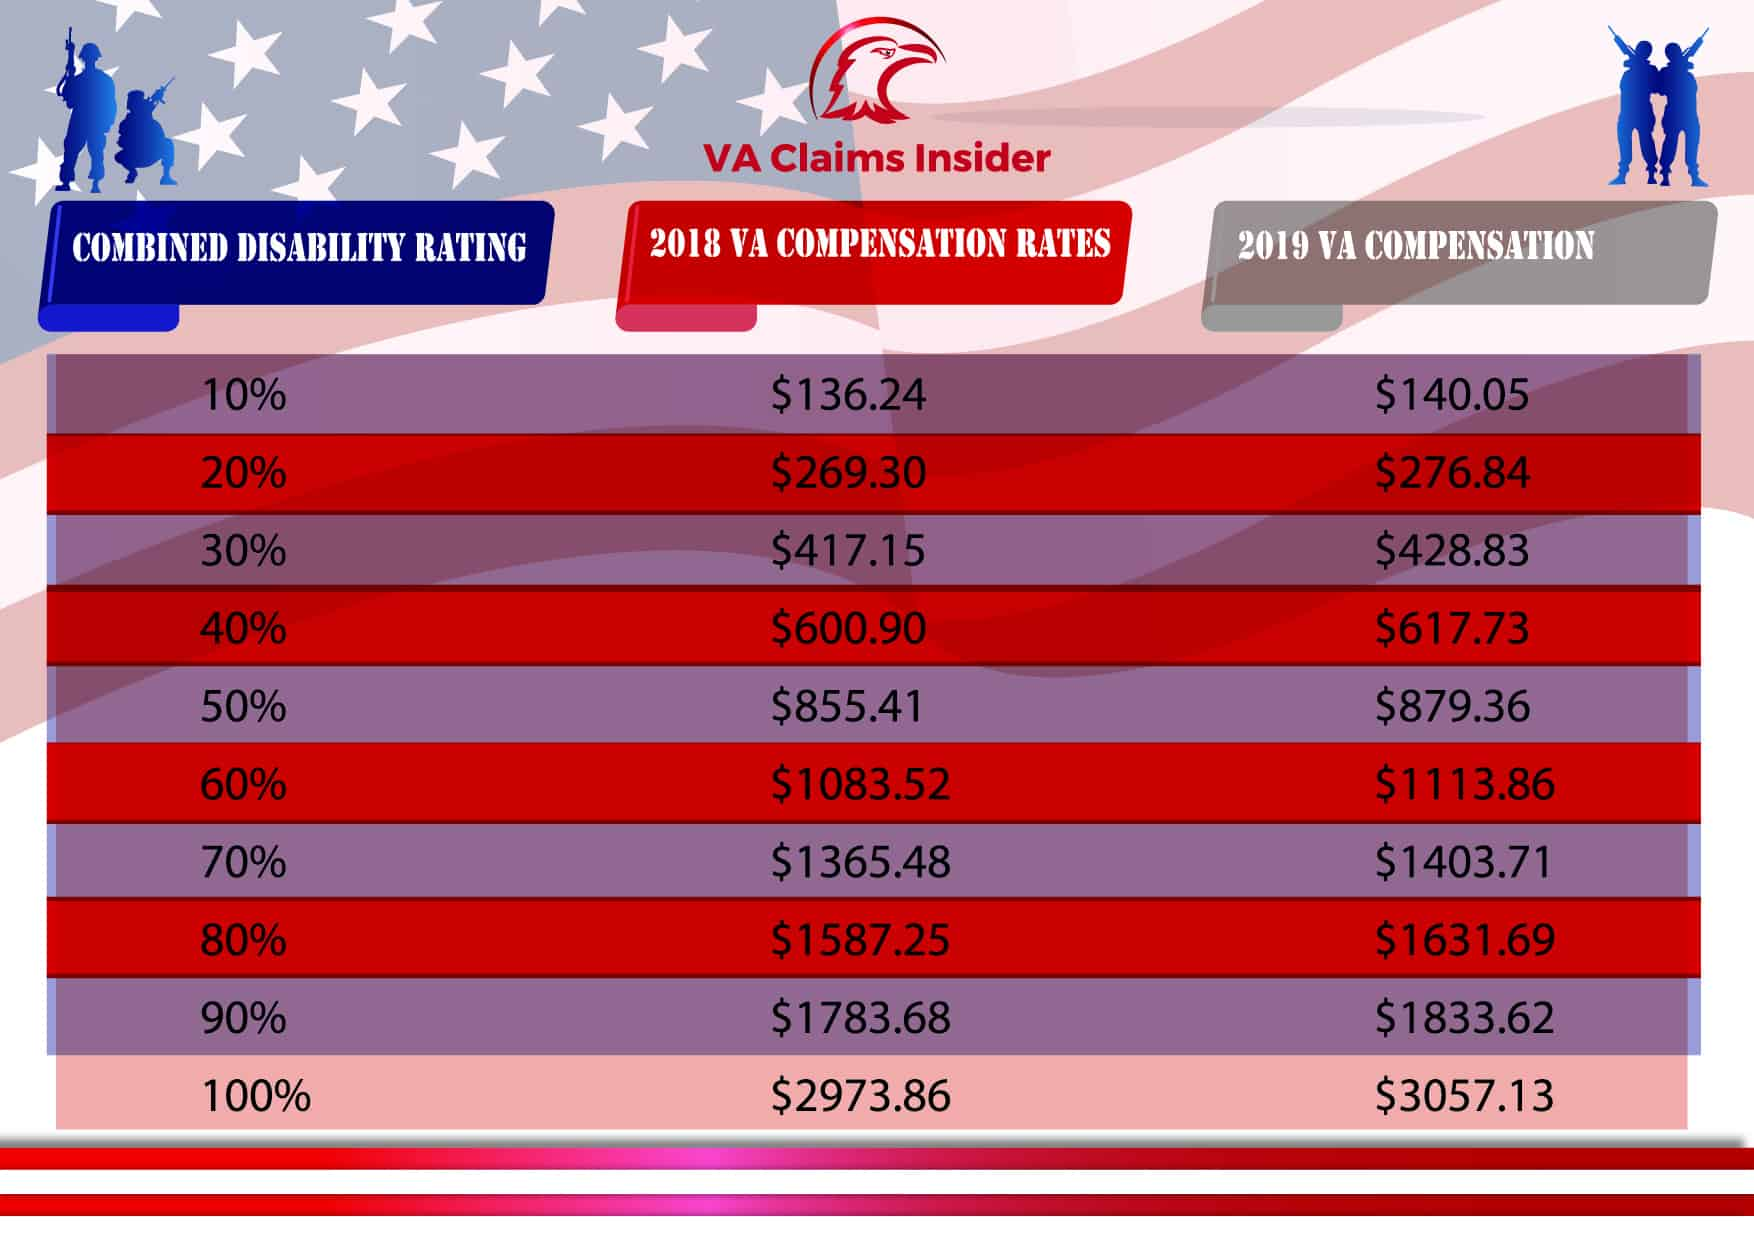 2019 VA Disability Compensation Pay Rates 2018 to 2019 VA compensation table